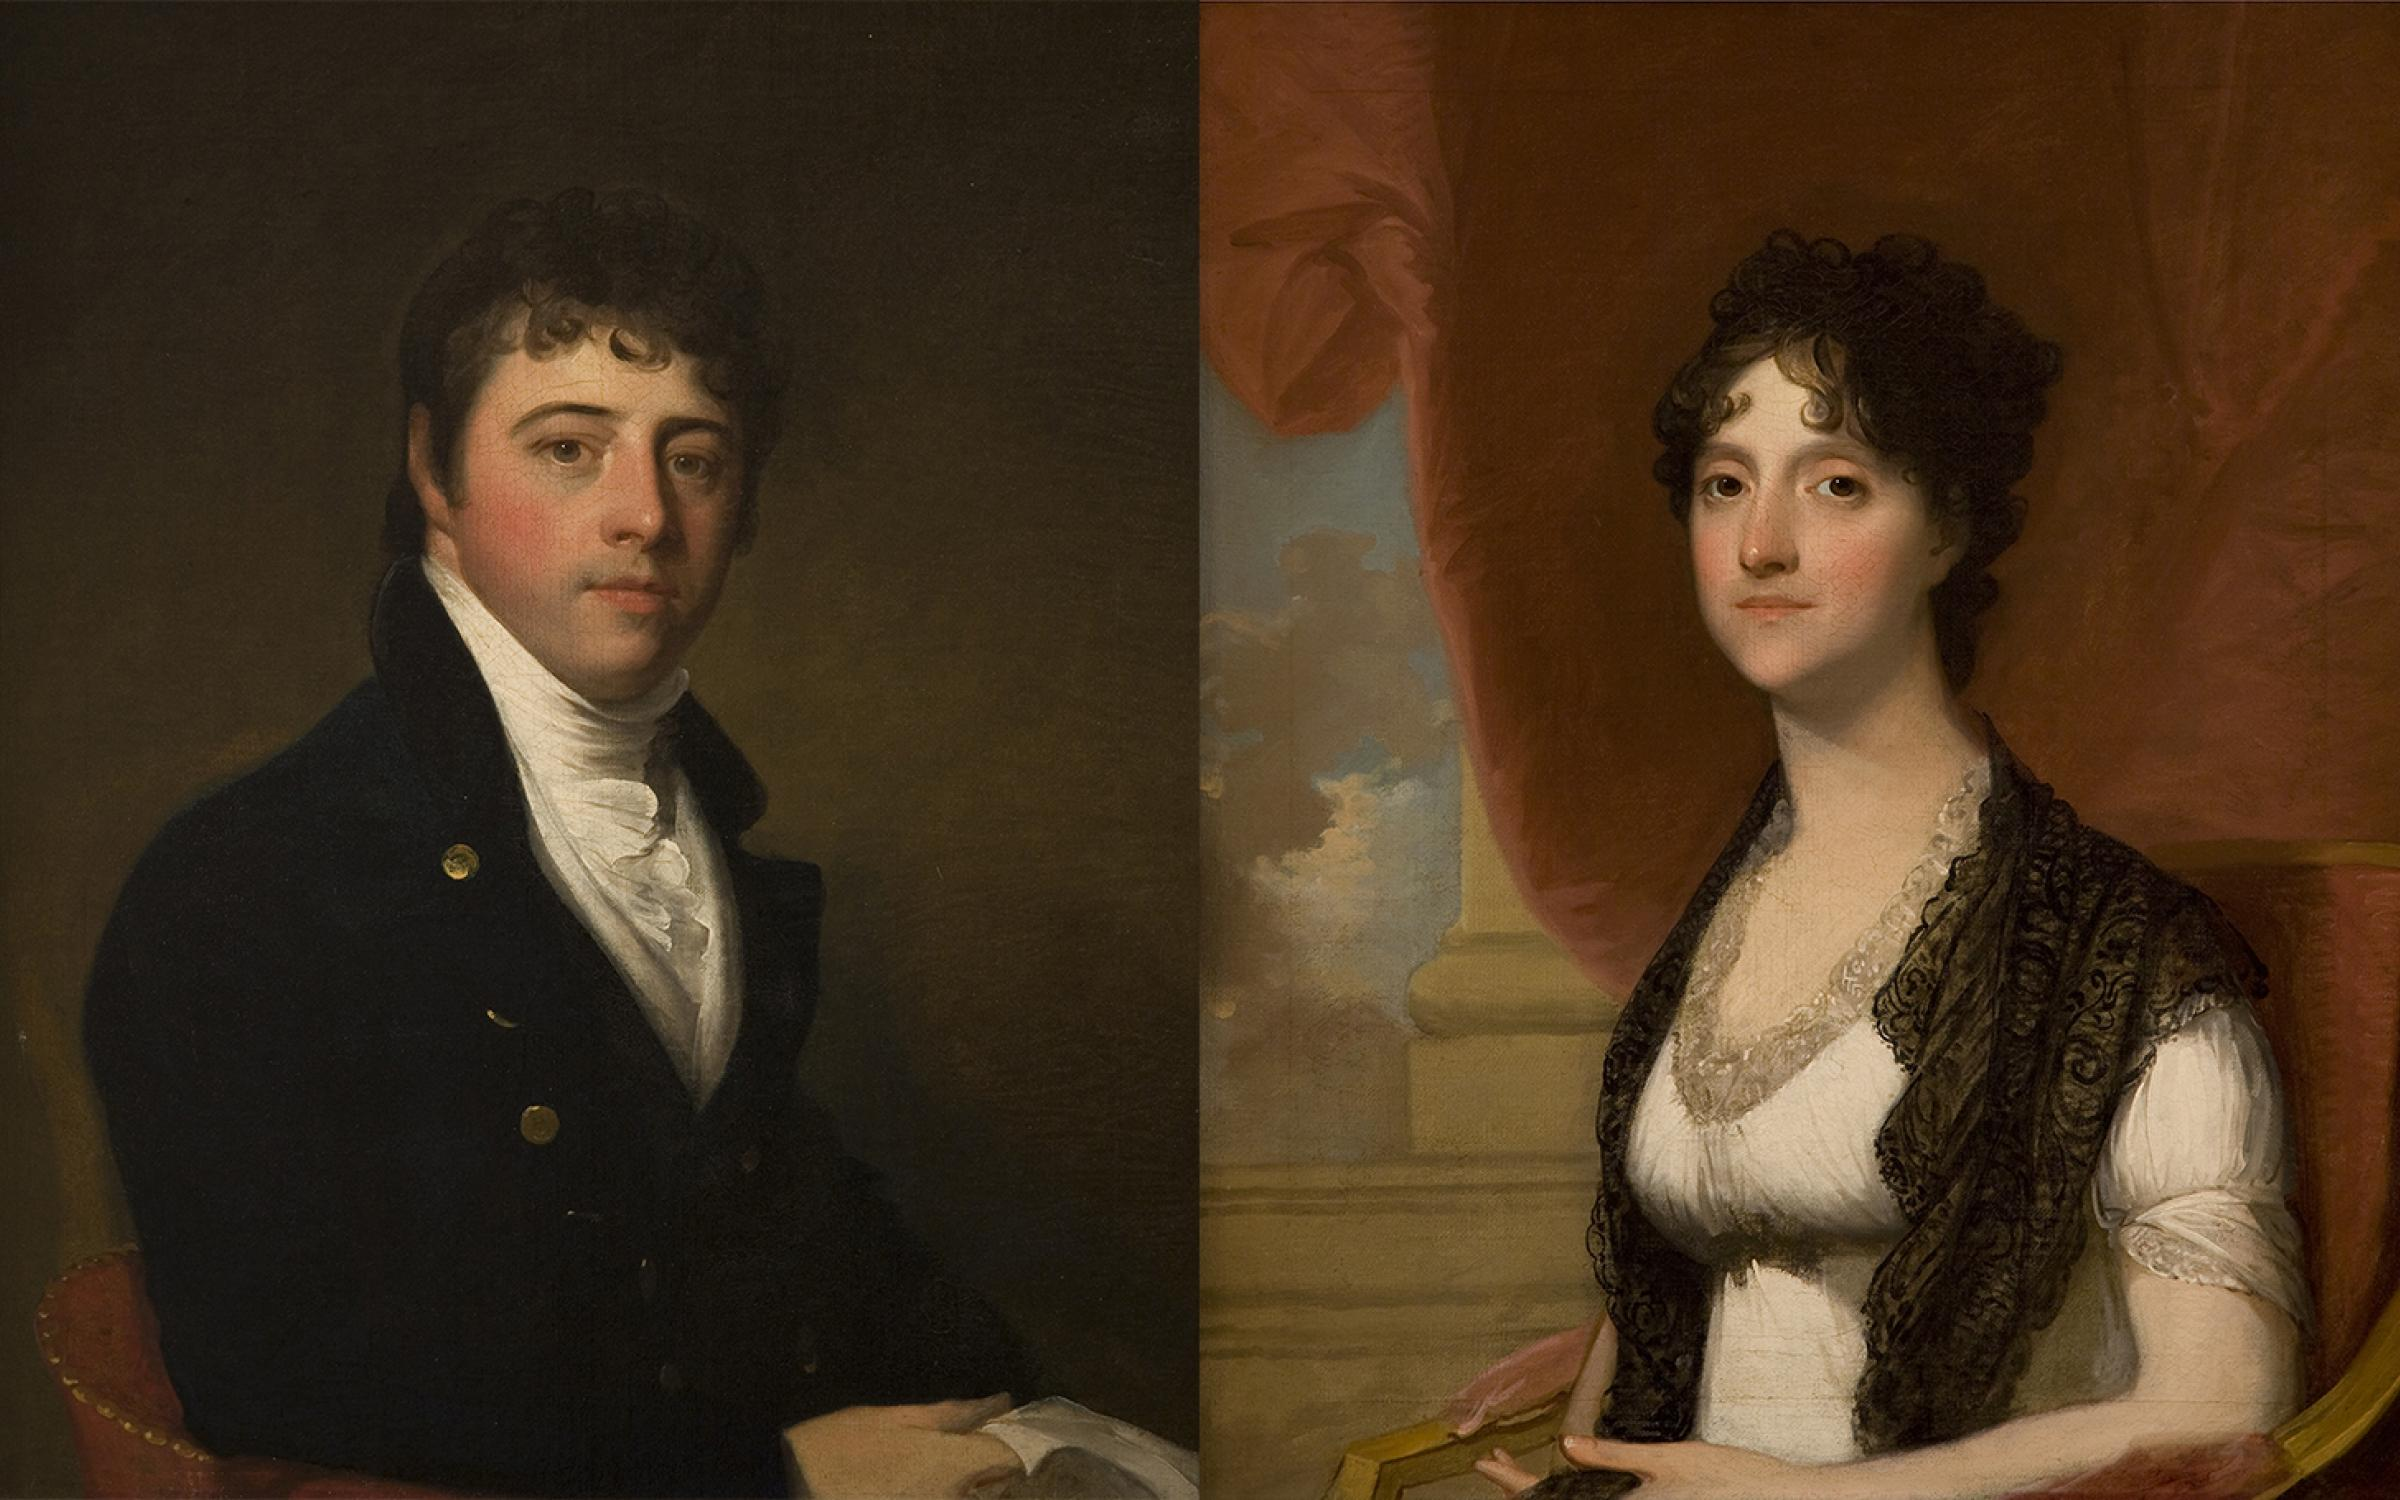 Gilbert Stuart (American, 1755-1828), Mr. and Mrs. Simon Walker, ca. 1802, oil on canvas, purchased with funds from the Marriner S. Eccles Foundation, UMFA1982.007.001-22